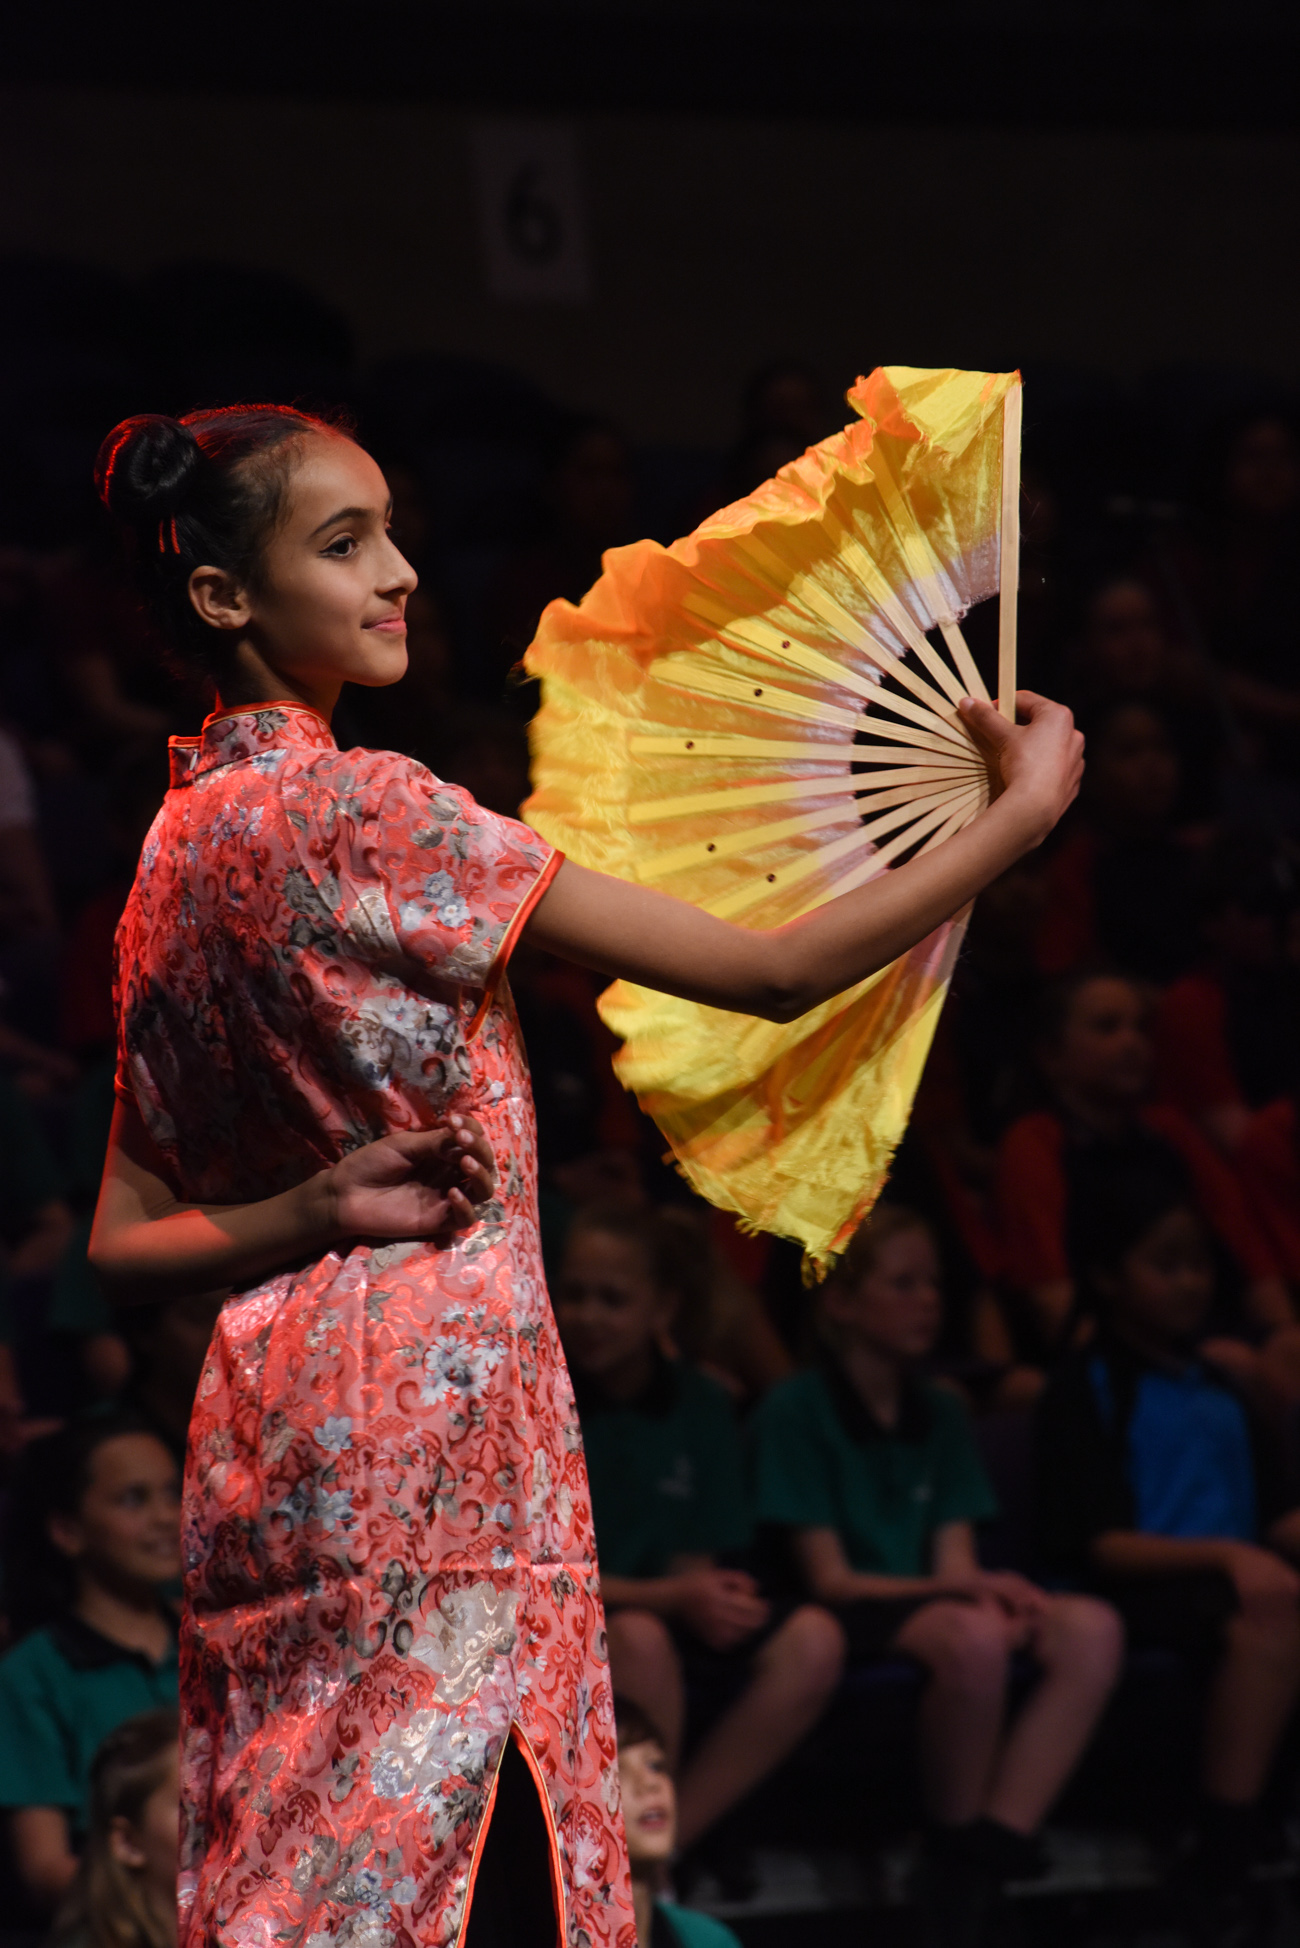 A girl dancing gracefully with a yellow fan Vodafone Event Centre